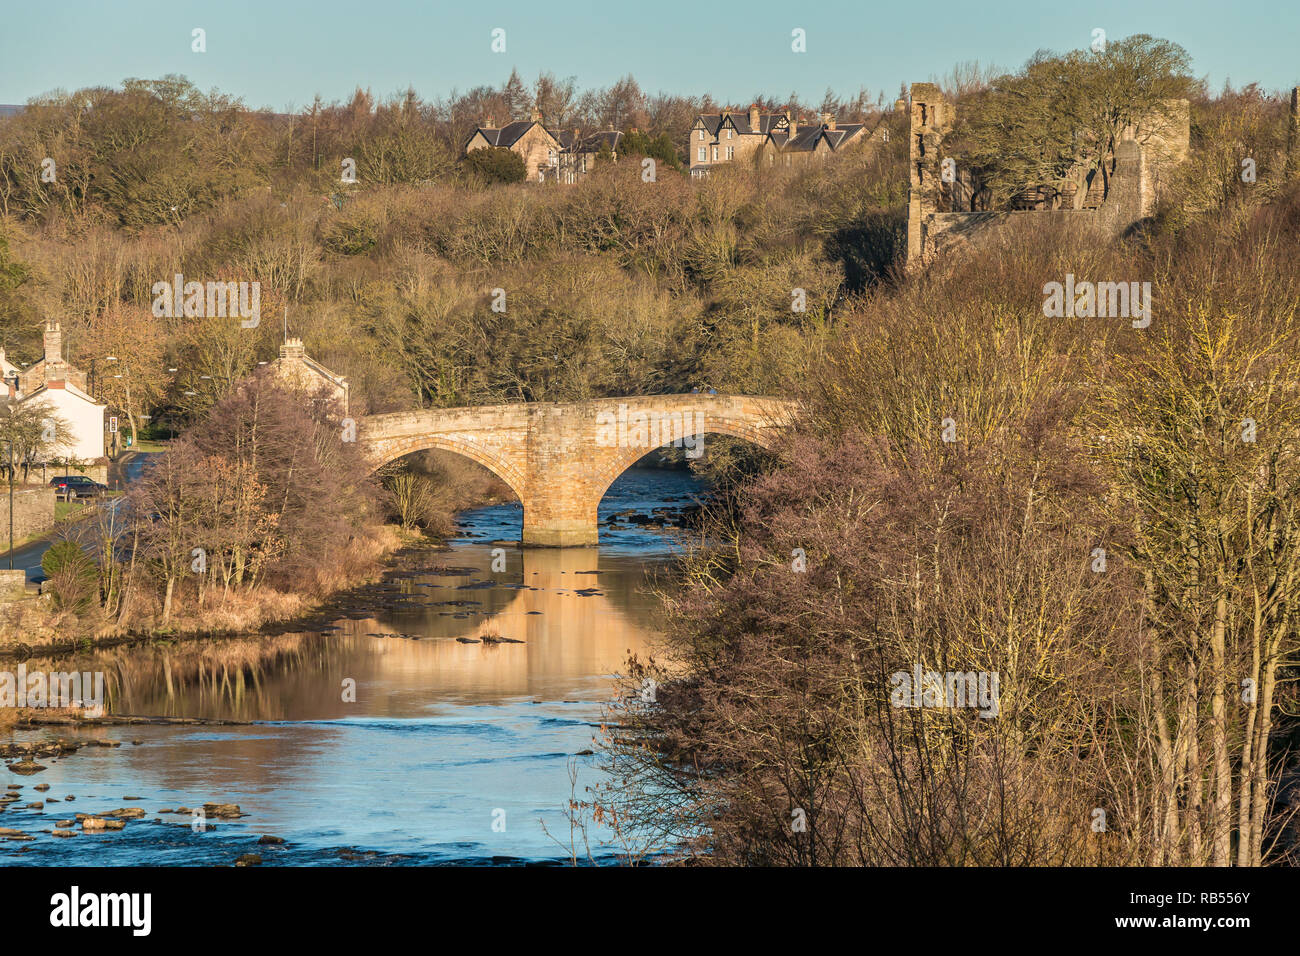 County Bridge and the castle ruins, Barnard Castle, Teesdale, County Durham, UK in January Sunshine Stock Photo